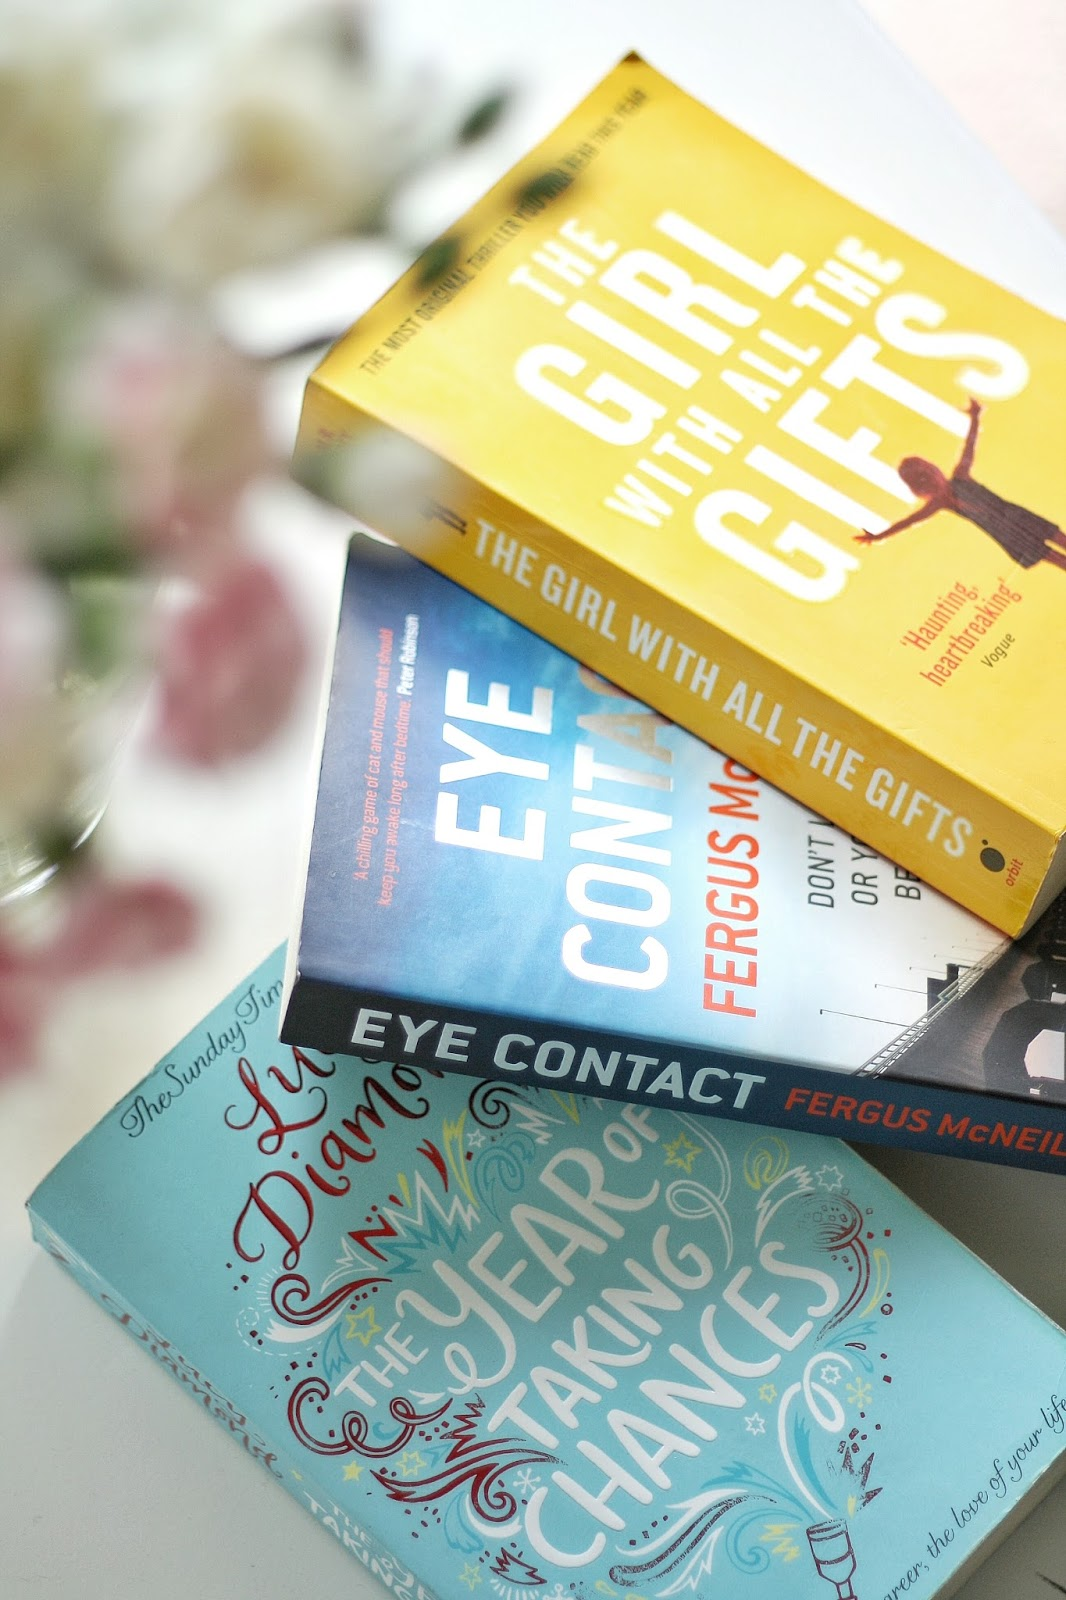 Books Ive recently read. THE GIRL WITH ALL THE GIFTS. EYE CONACT. A YEAR OF TAKING CHANCES.